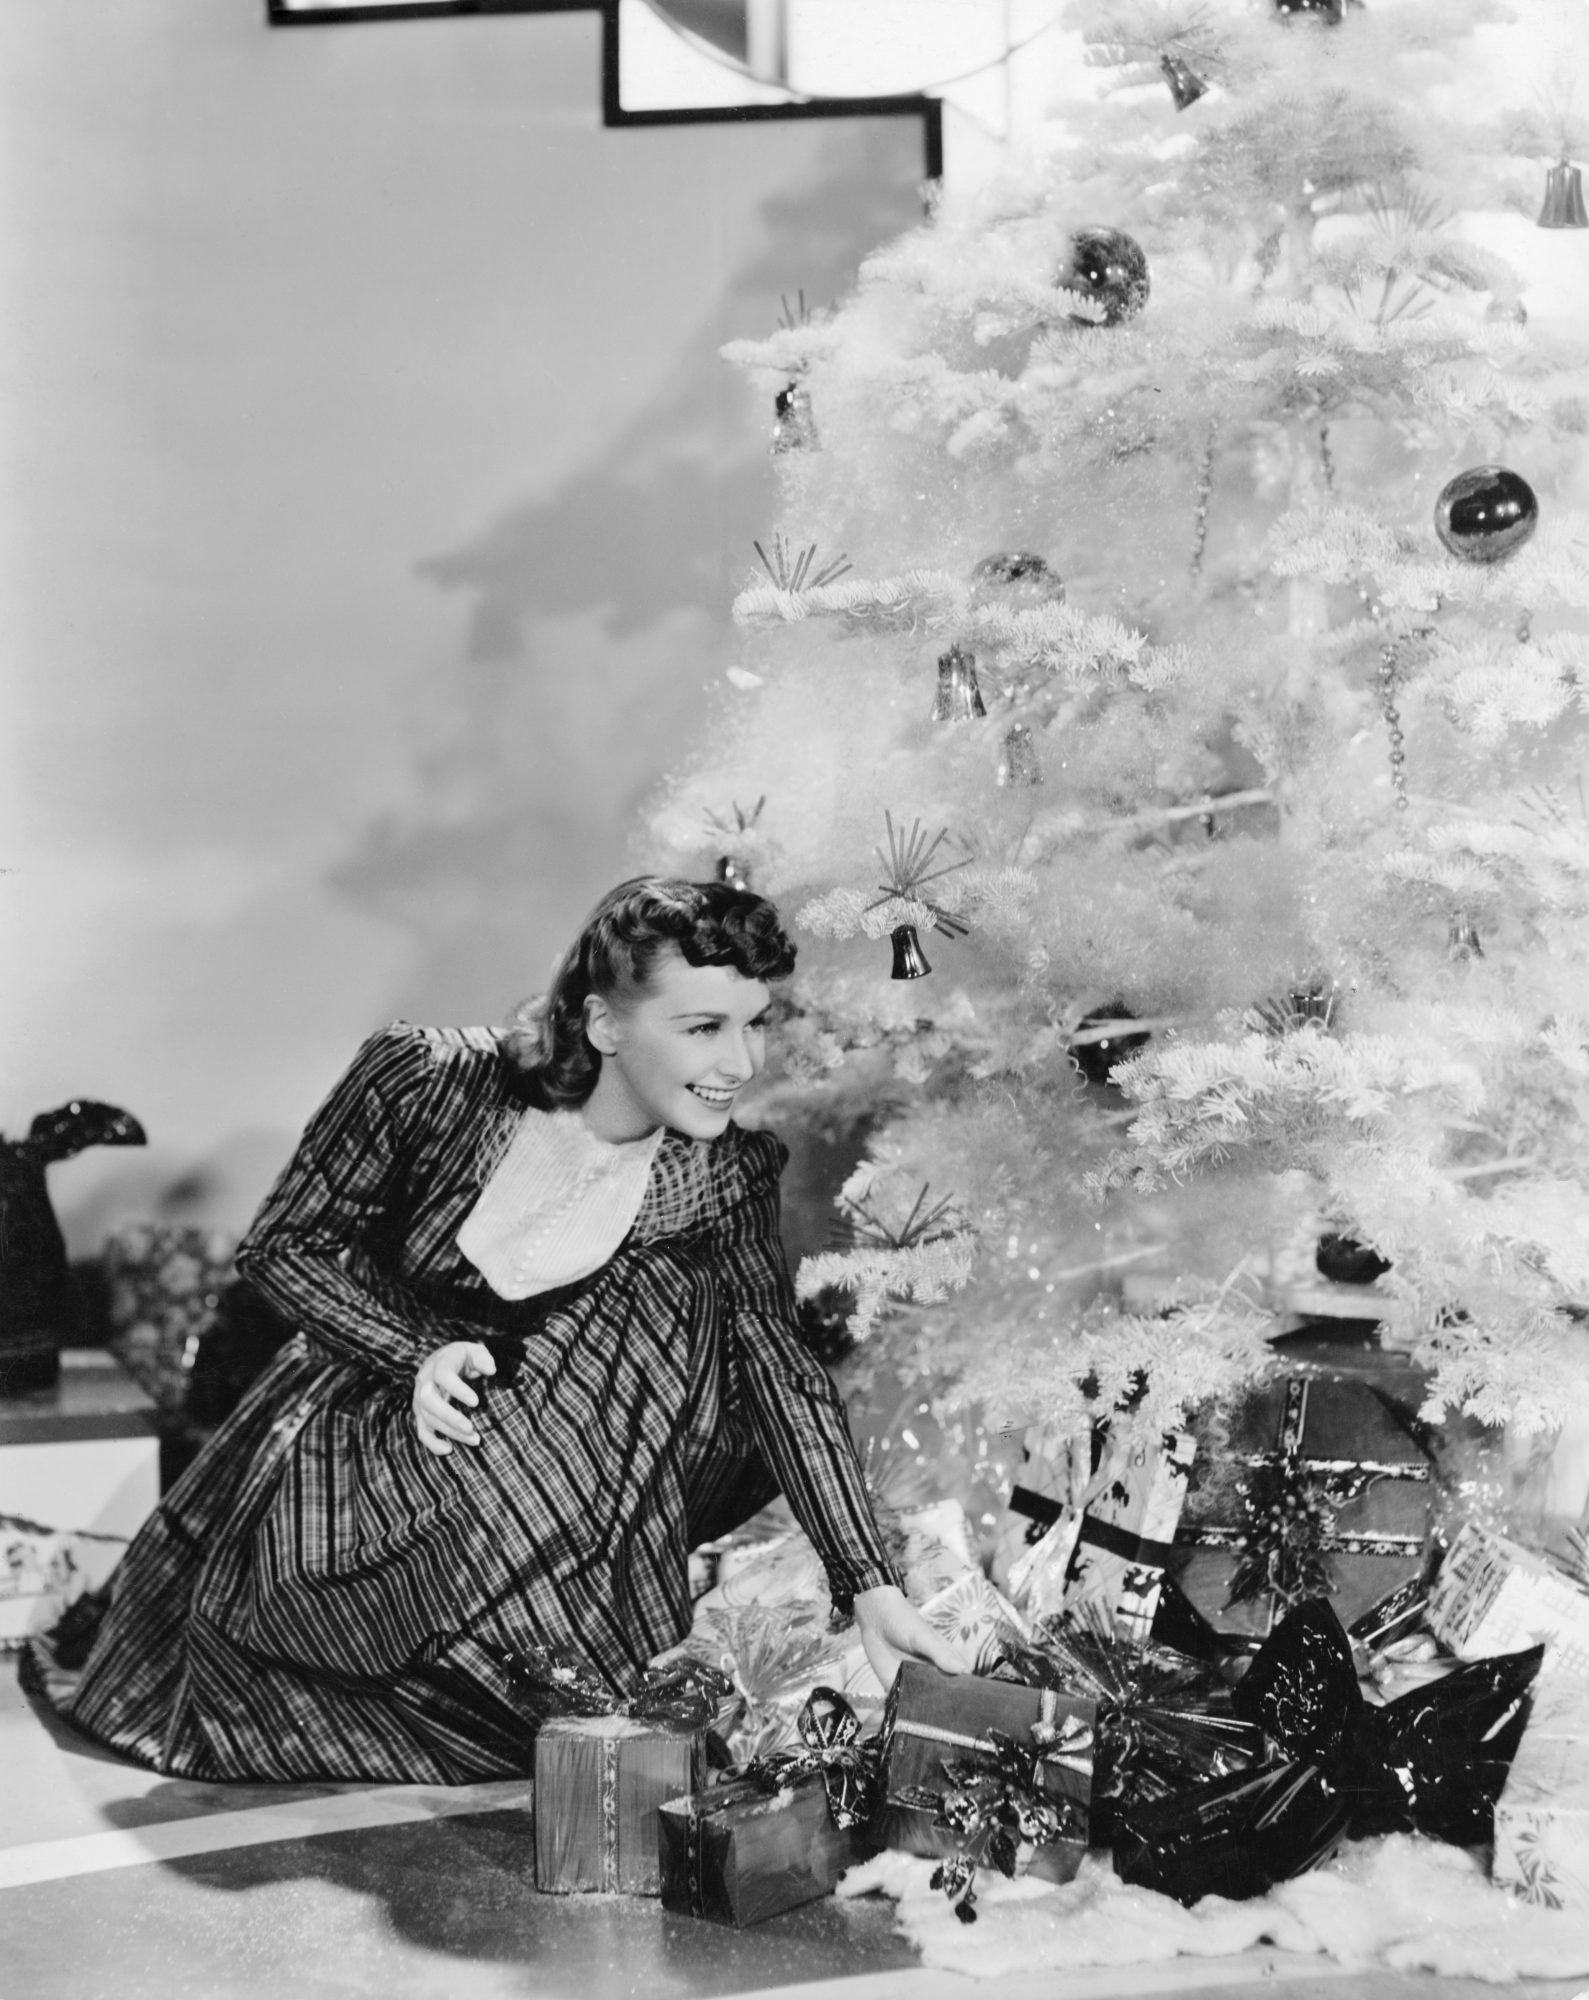 American actress and singer Rosemary Lane (1913 - 1974) of the Lane Sisters, with a pile of Christmas presents under the tree